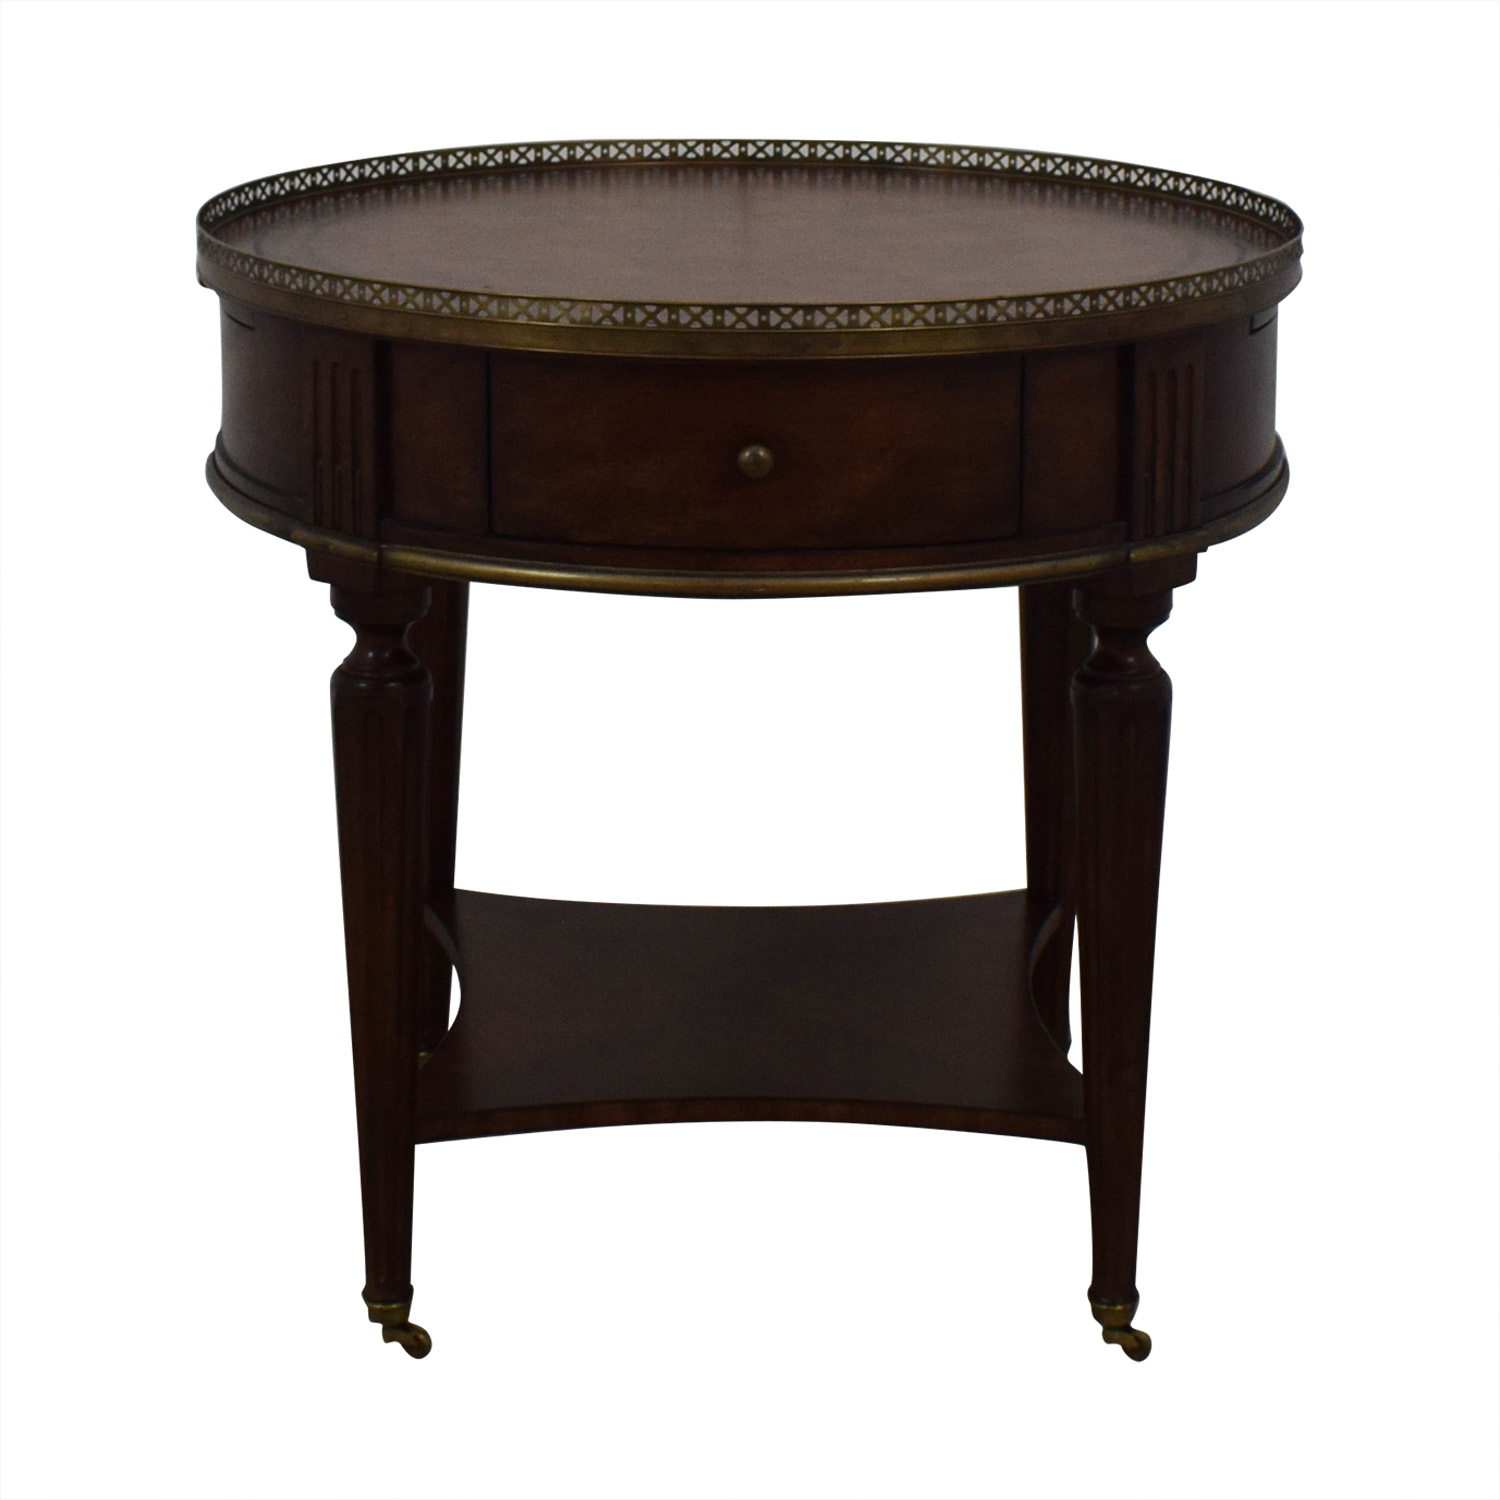 John Richard John Richard European Crossroads Bouillotte Table on sale